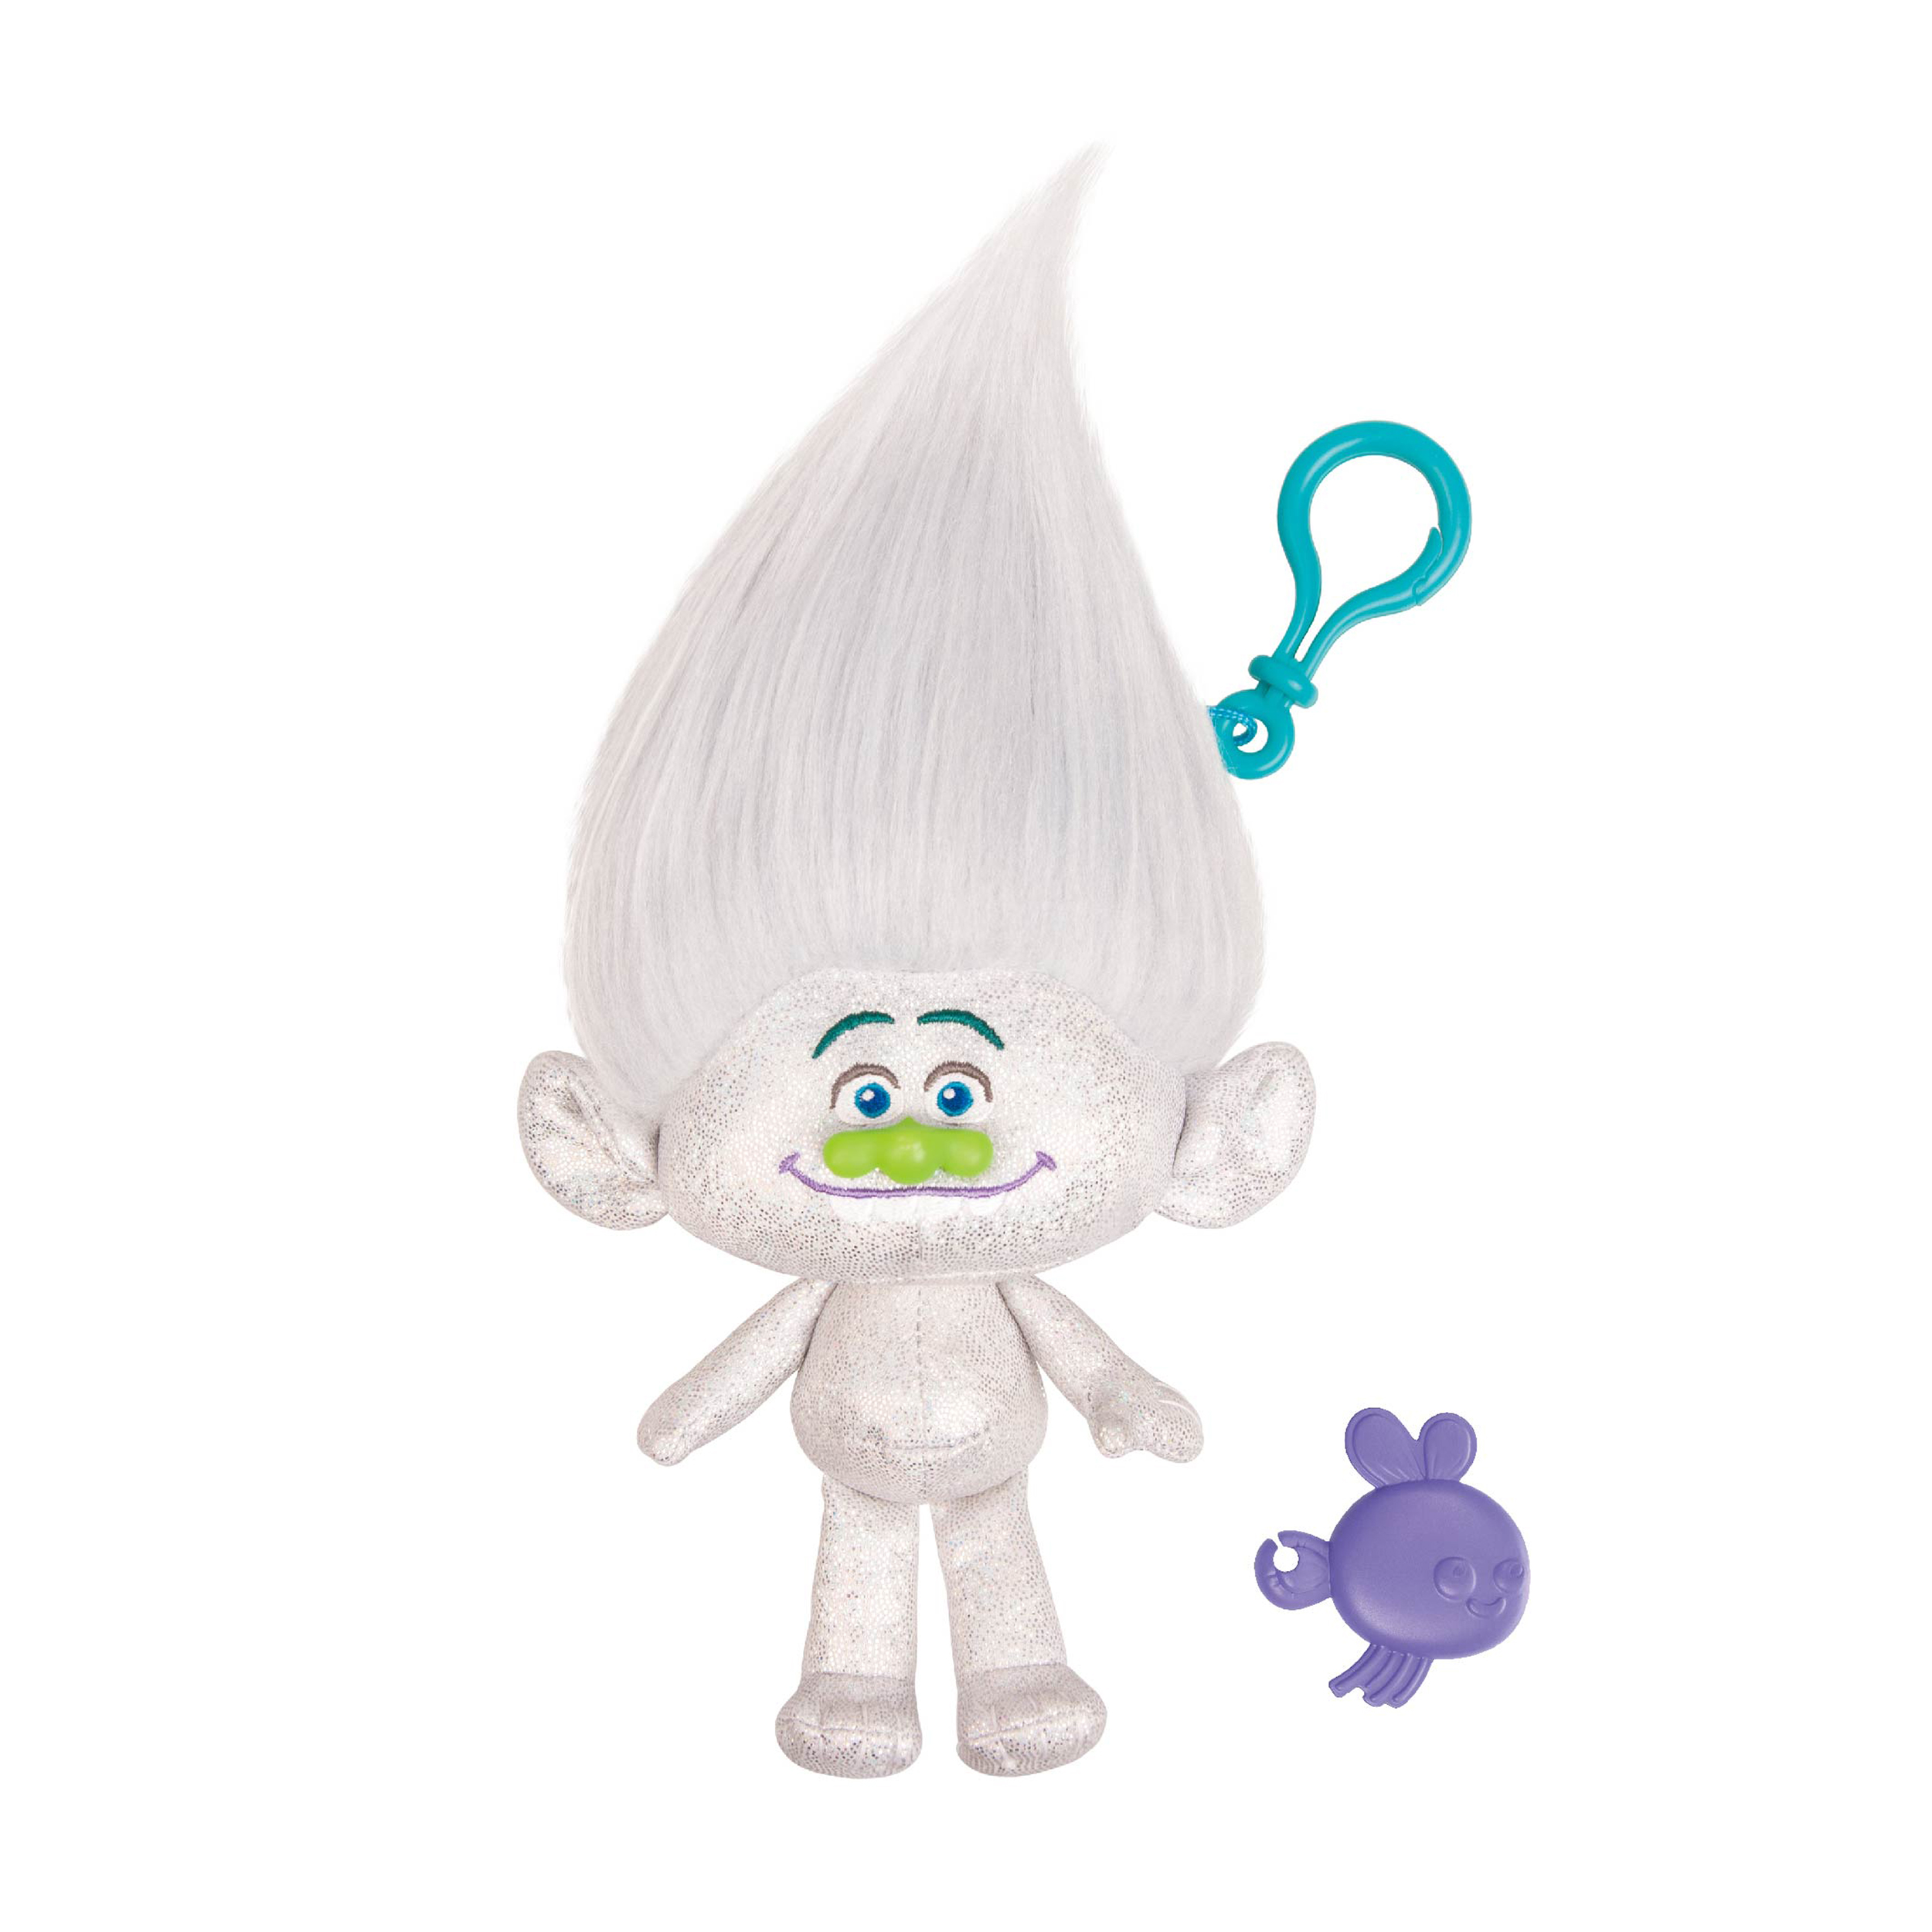 figurina breloc trolls - guy diamond, 22 cm